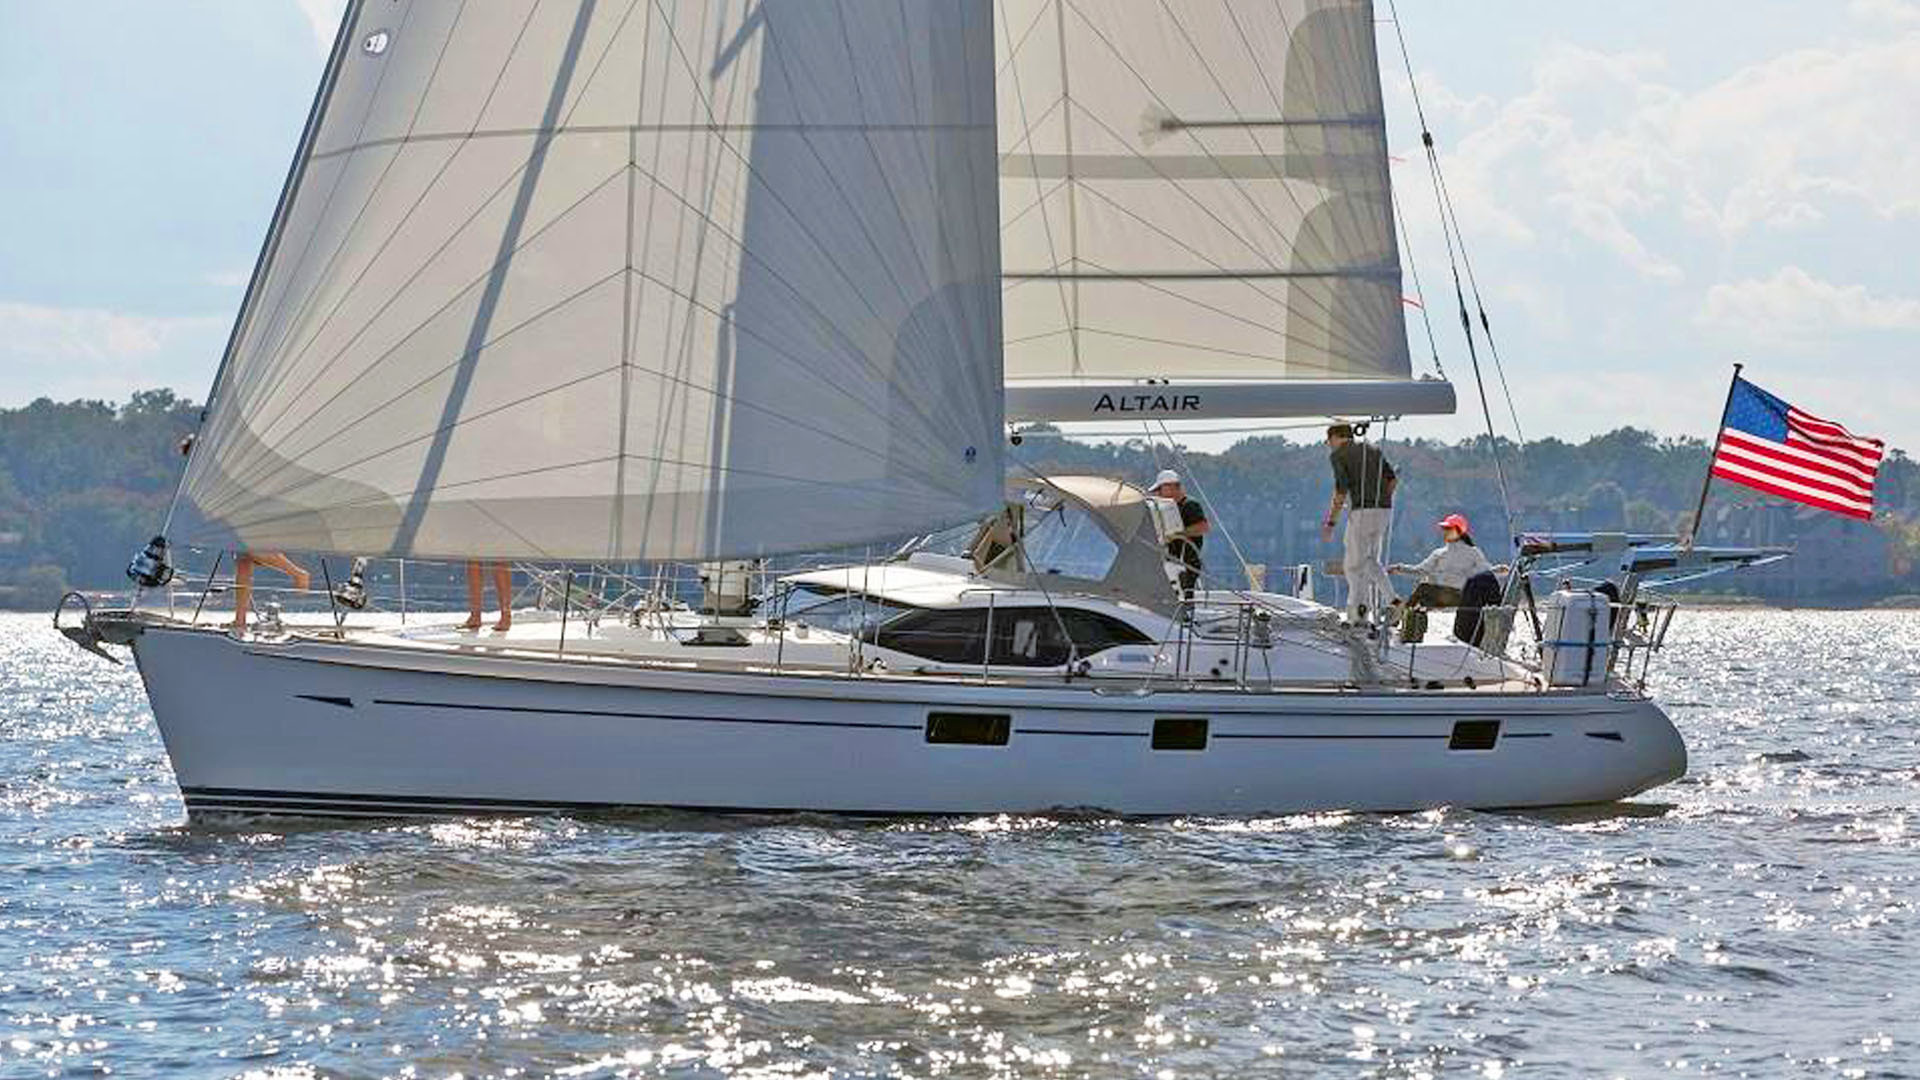 48' Oyster 2015 475 ALTAIR